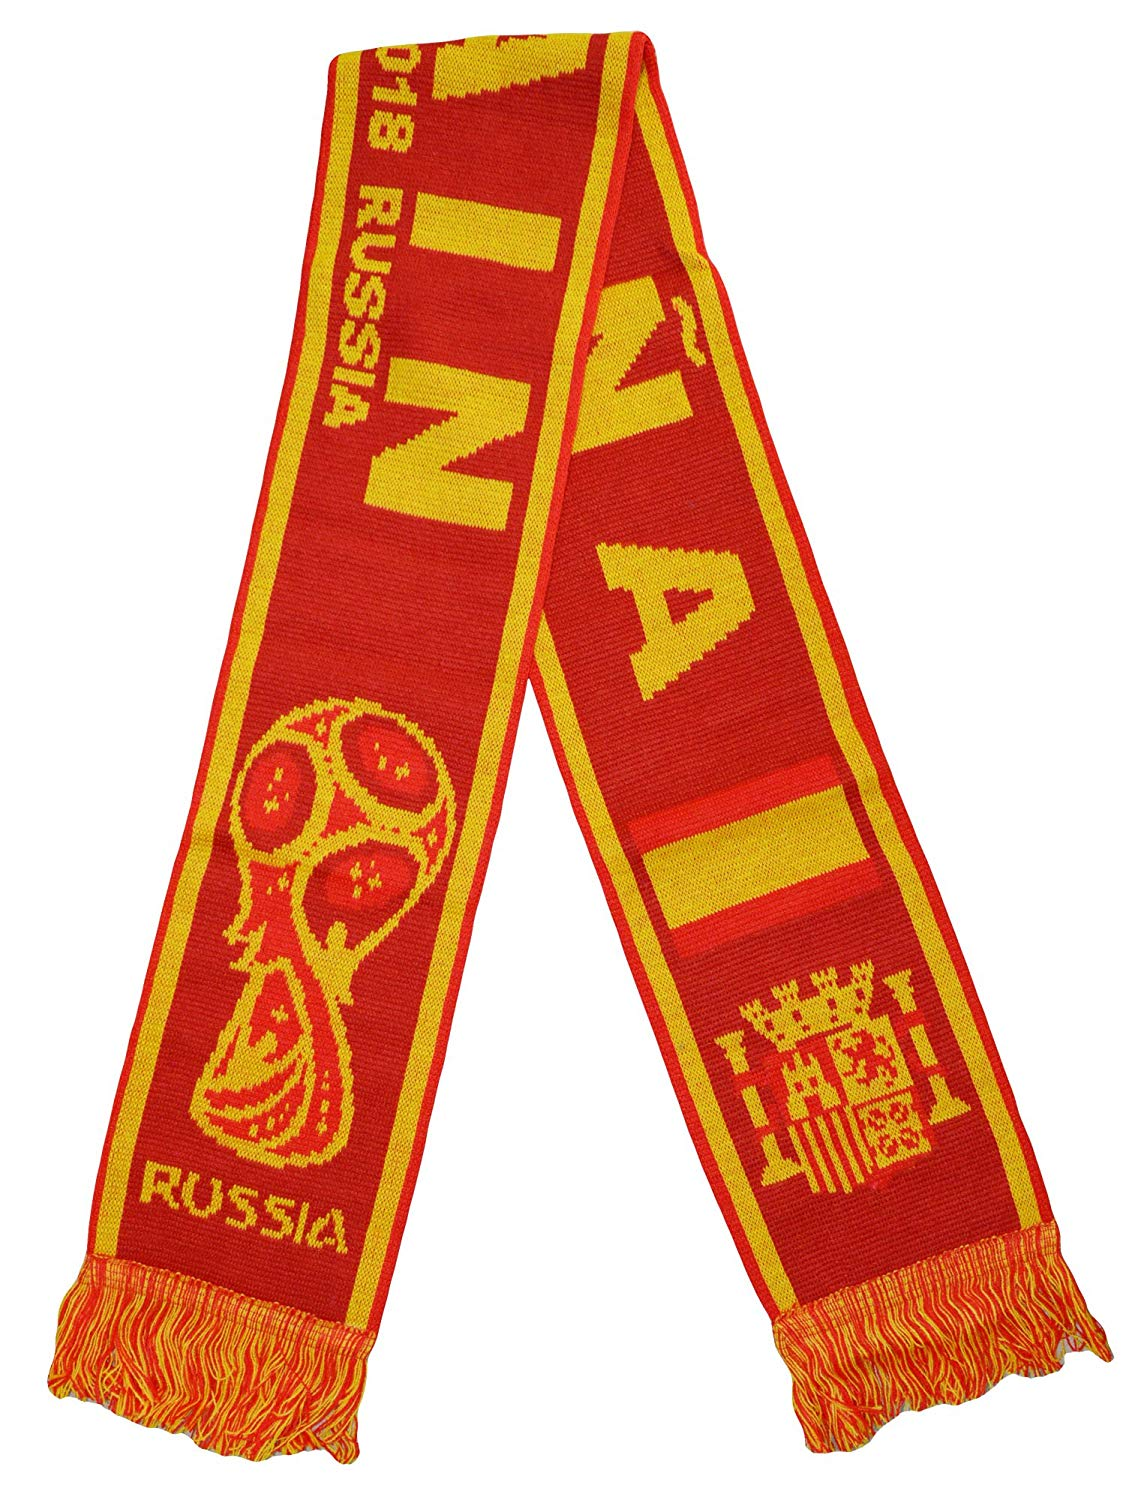 9155f98a0 Get Quotations · Spain Athletic Super Fans Football Jacquard Scarf -  Multicoloured OneSize